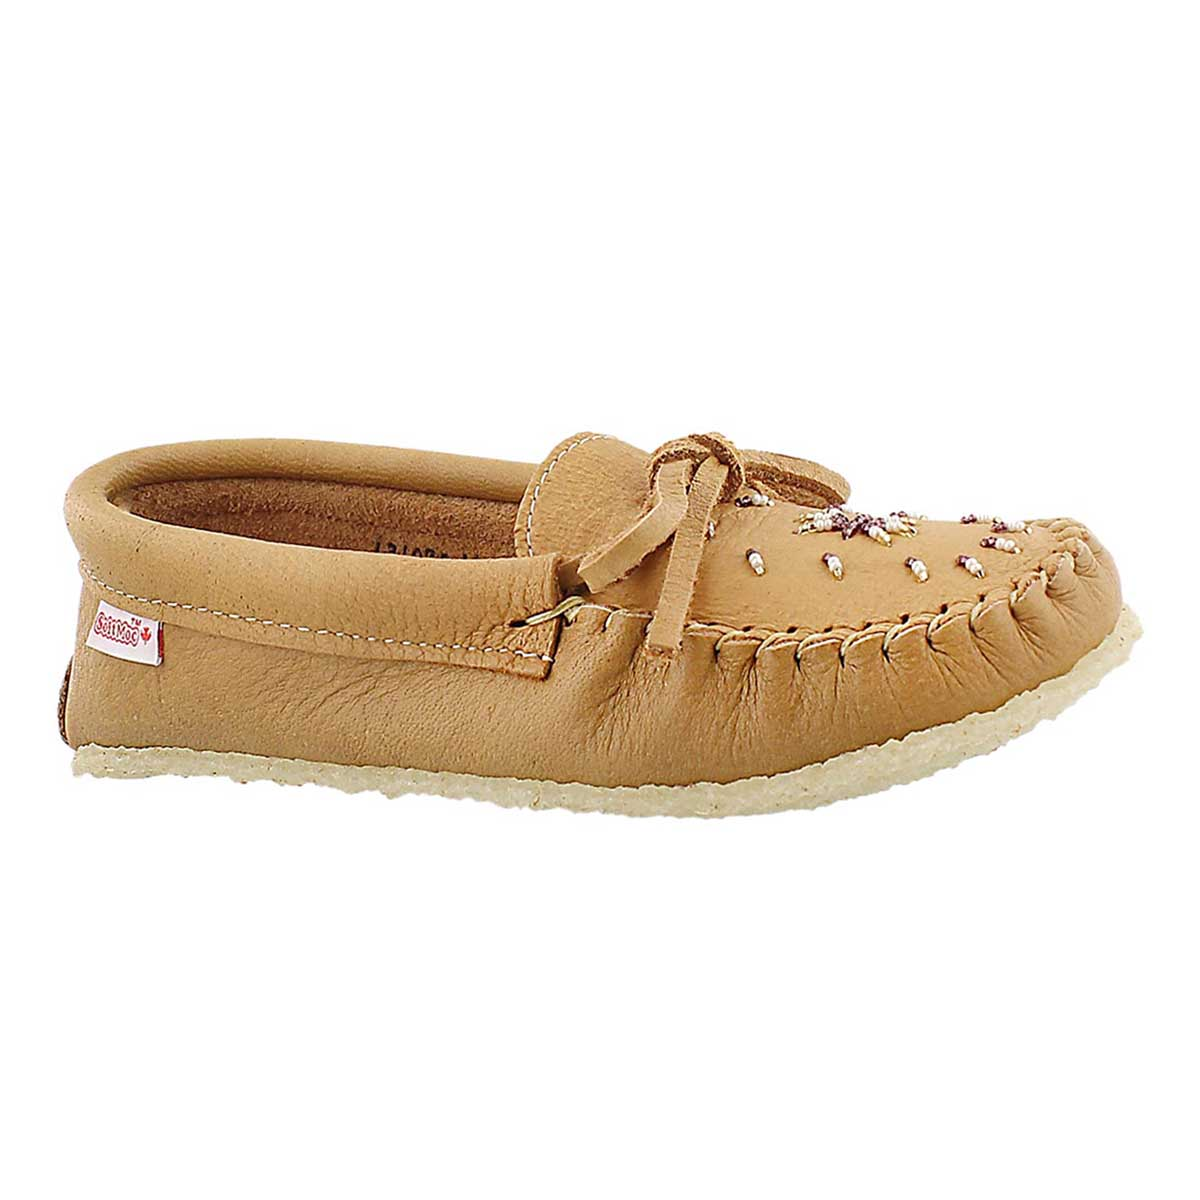 Lds tan crepe sole moccasin/beads